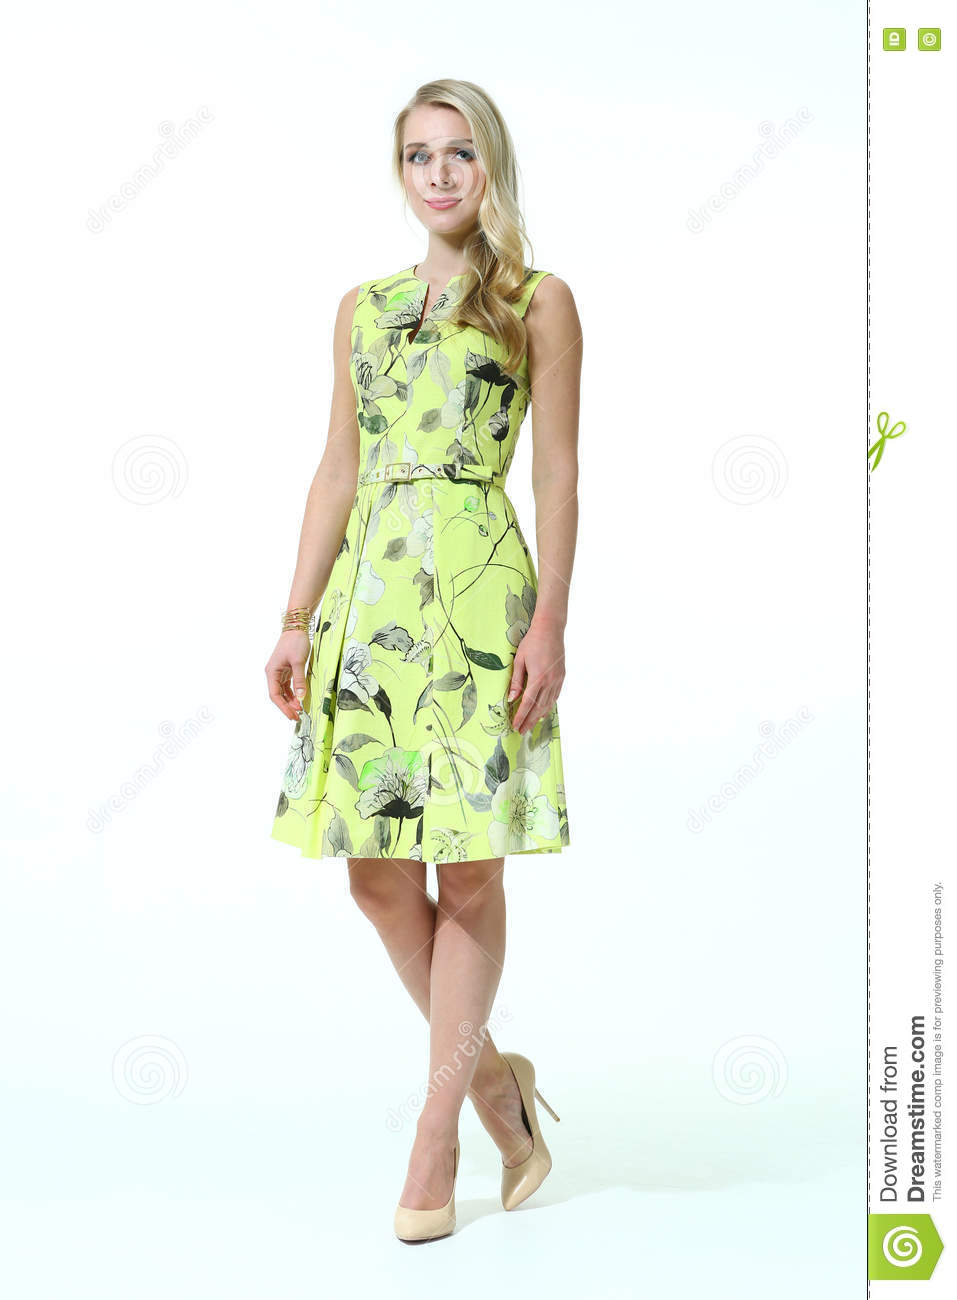 386c925d65dbe0 Blond slavic business executive woman with straight hair style in summer  print yellow sleeveless dress high heel shoes going full body length  isolated on ...